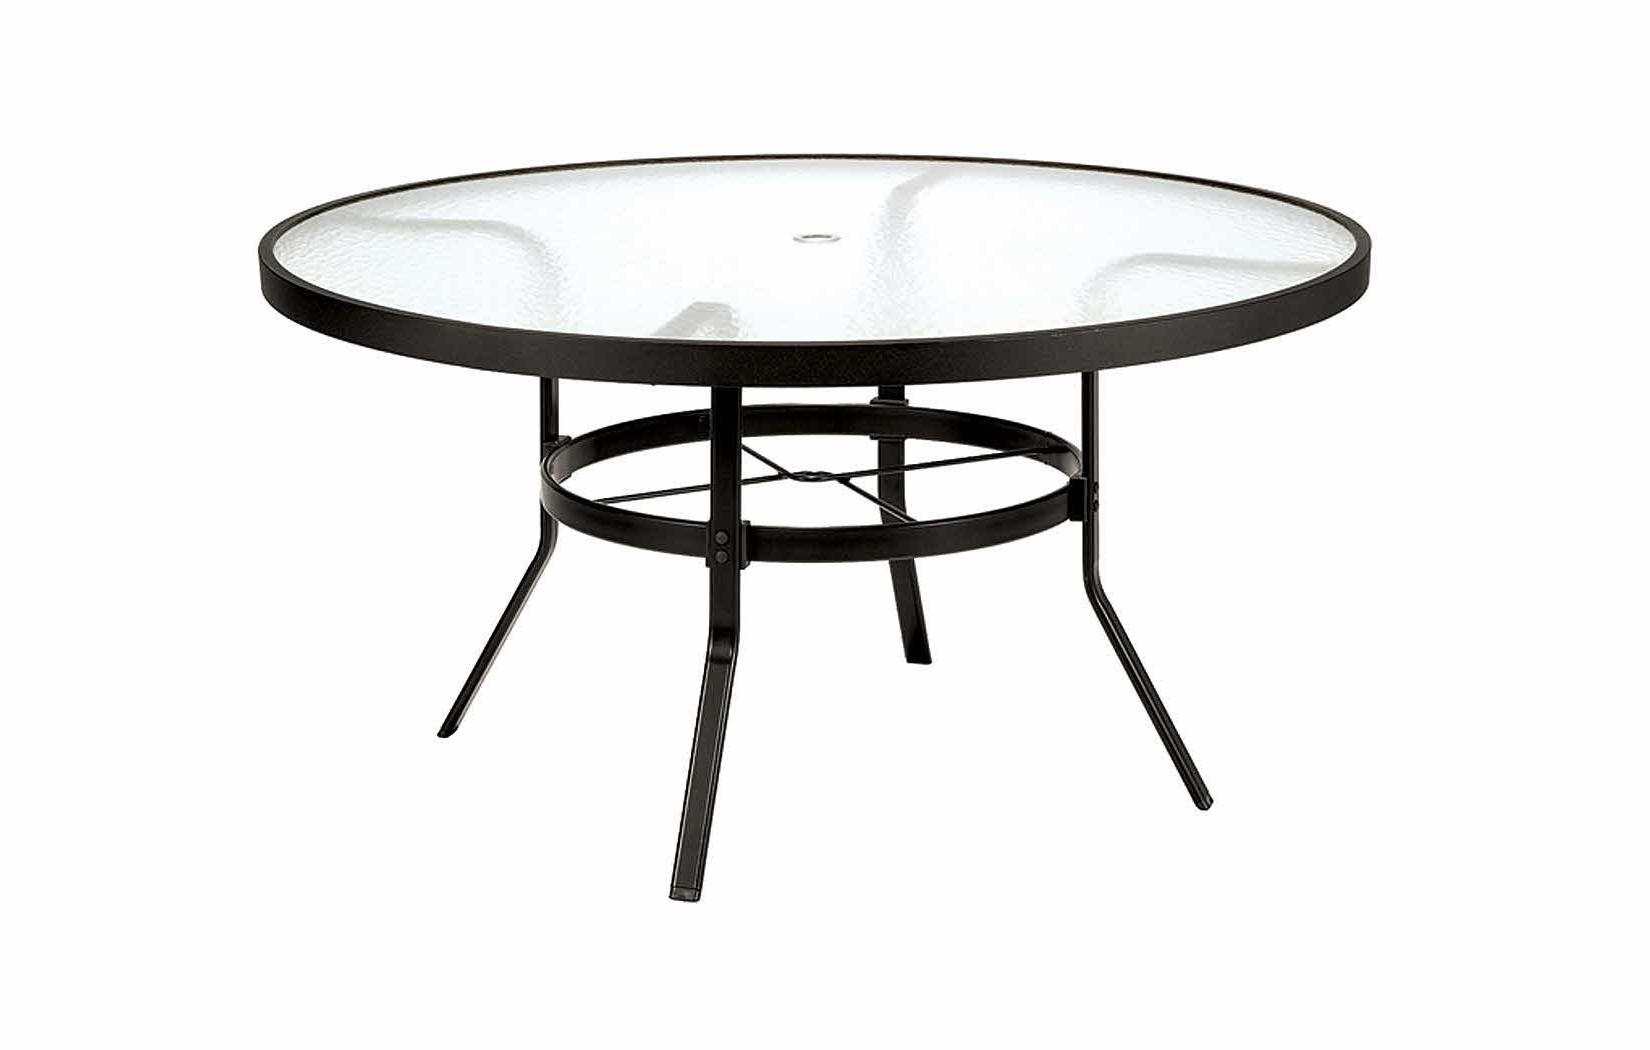 Fashionable Patio Tables With Umbrella Hole With Patio Table With Umbrella Hole – Home Design Ideas (View 18 of 20)